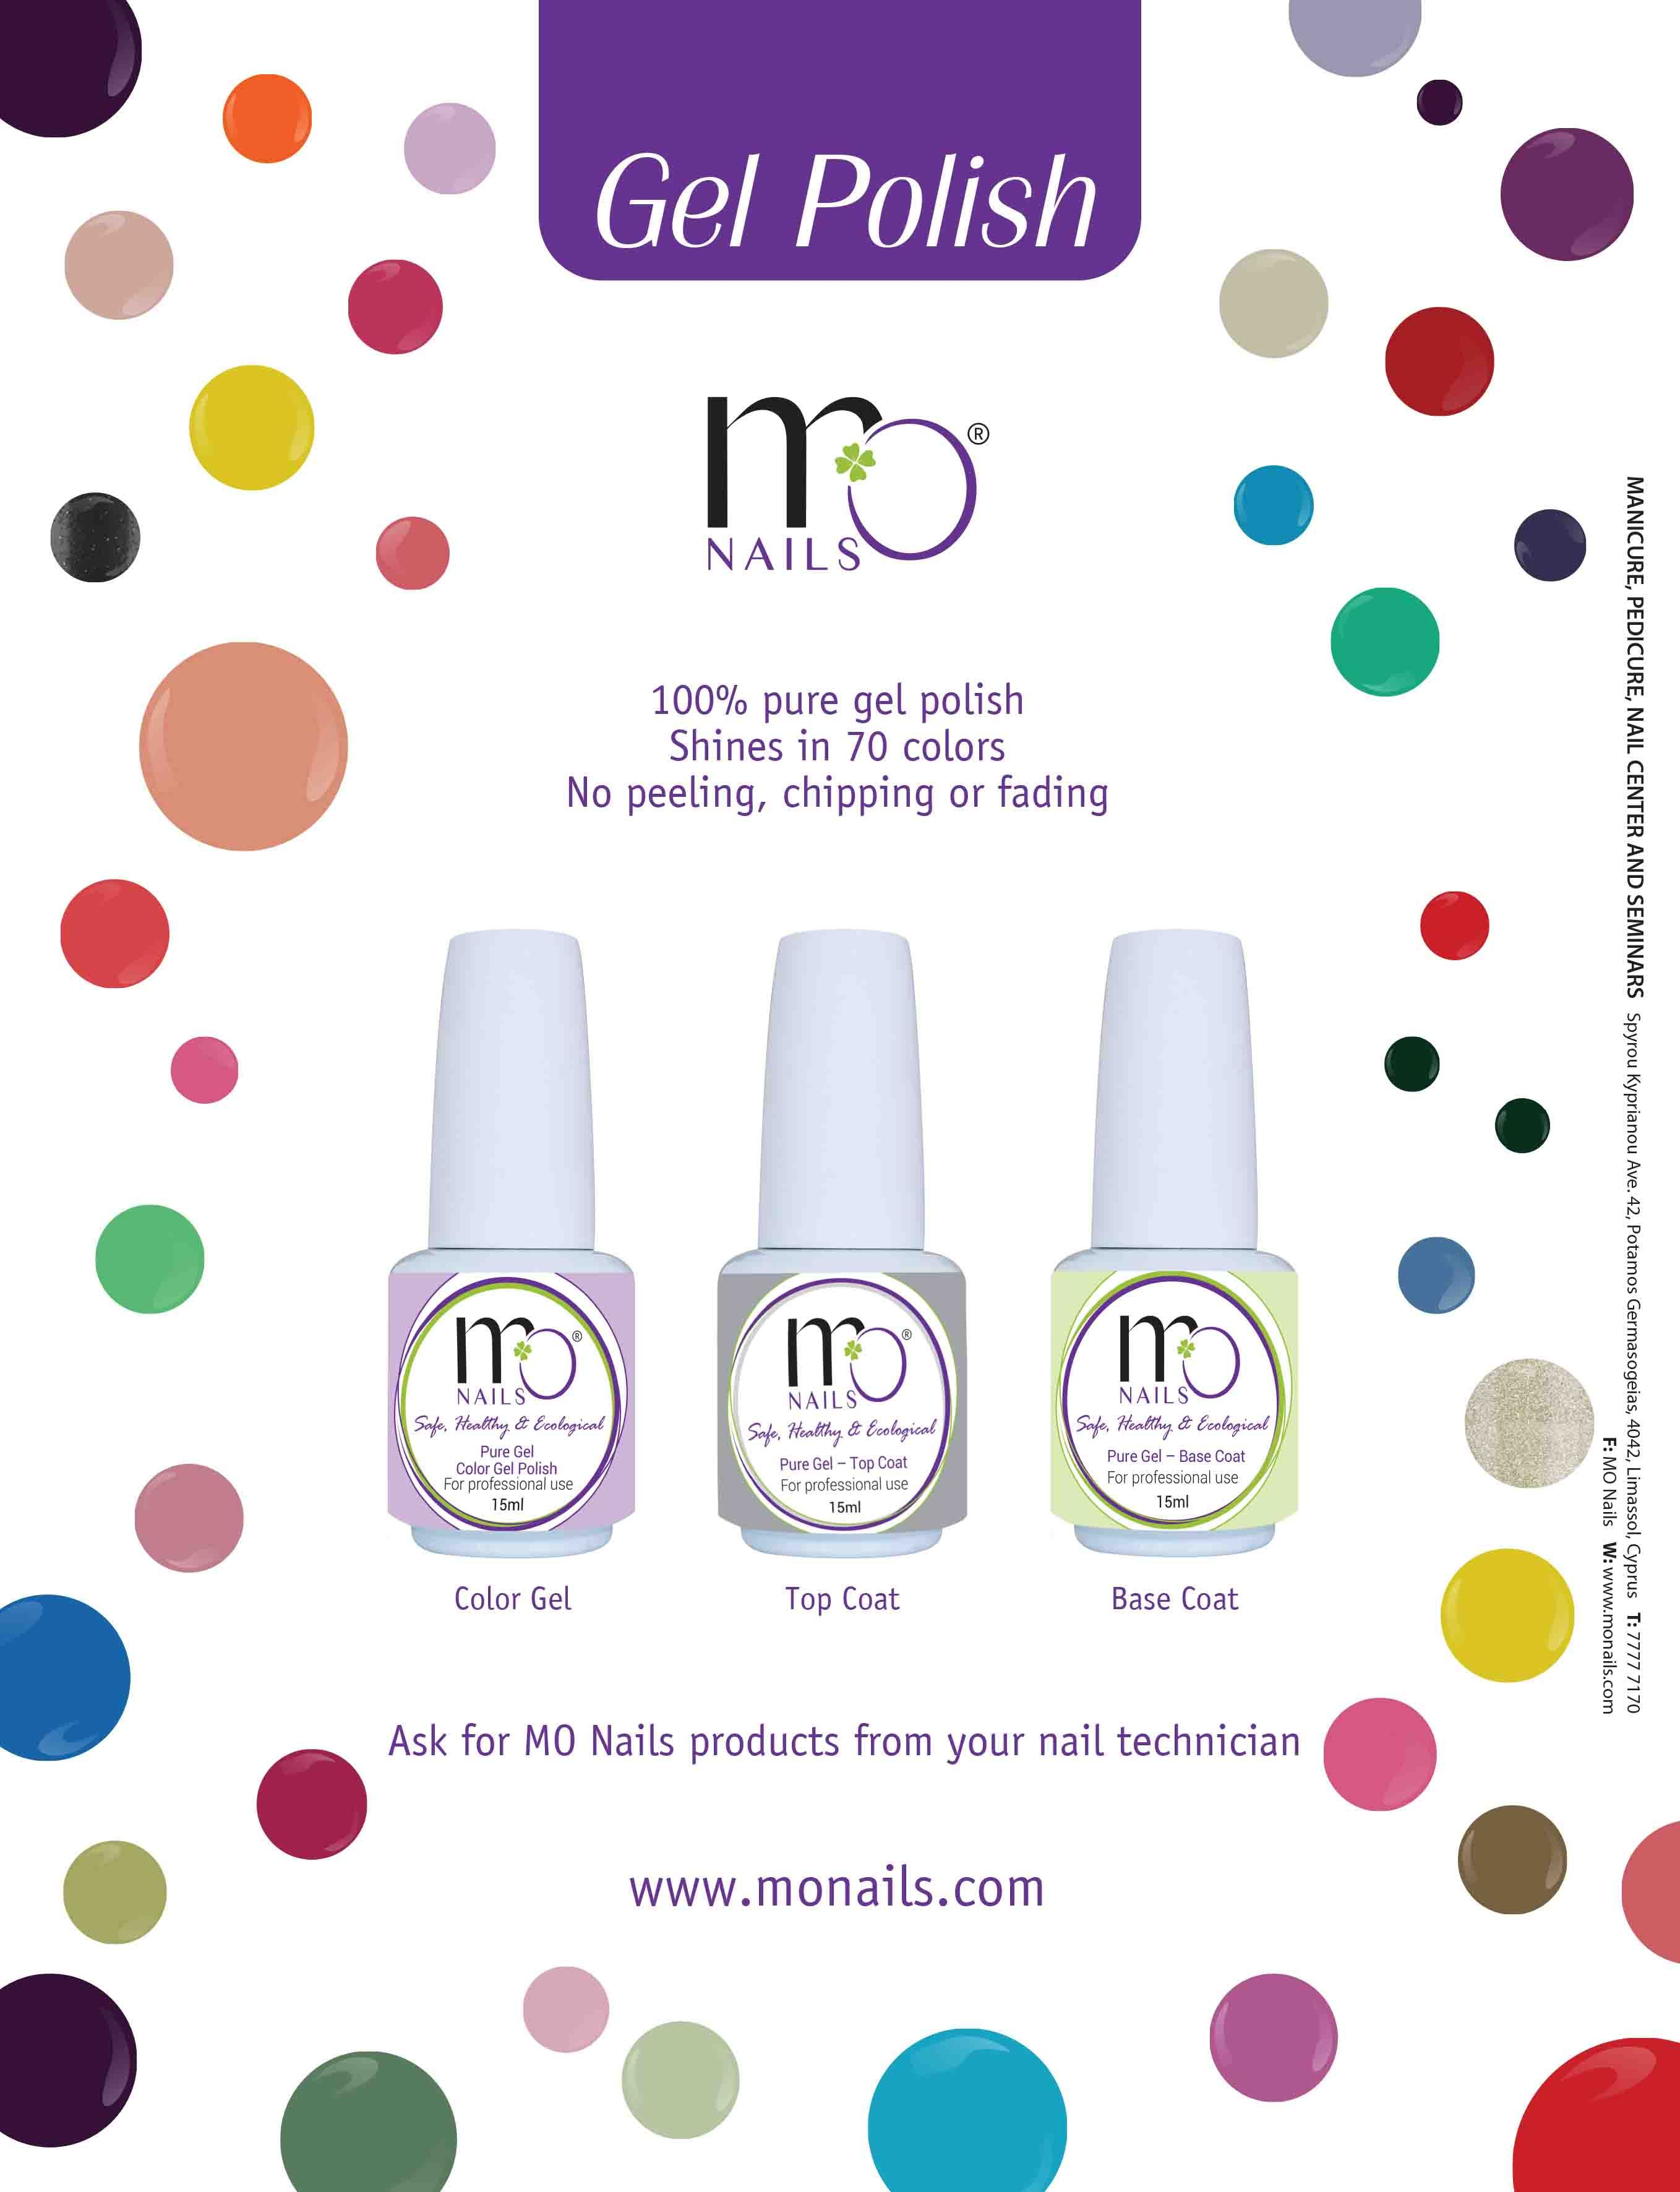 100% pure gel polish! Shines in more than 120 colors! No peeling ...